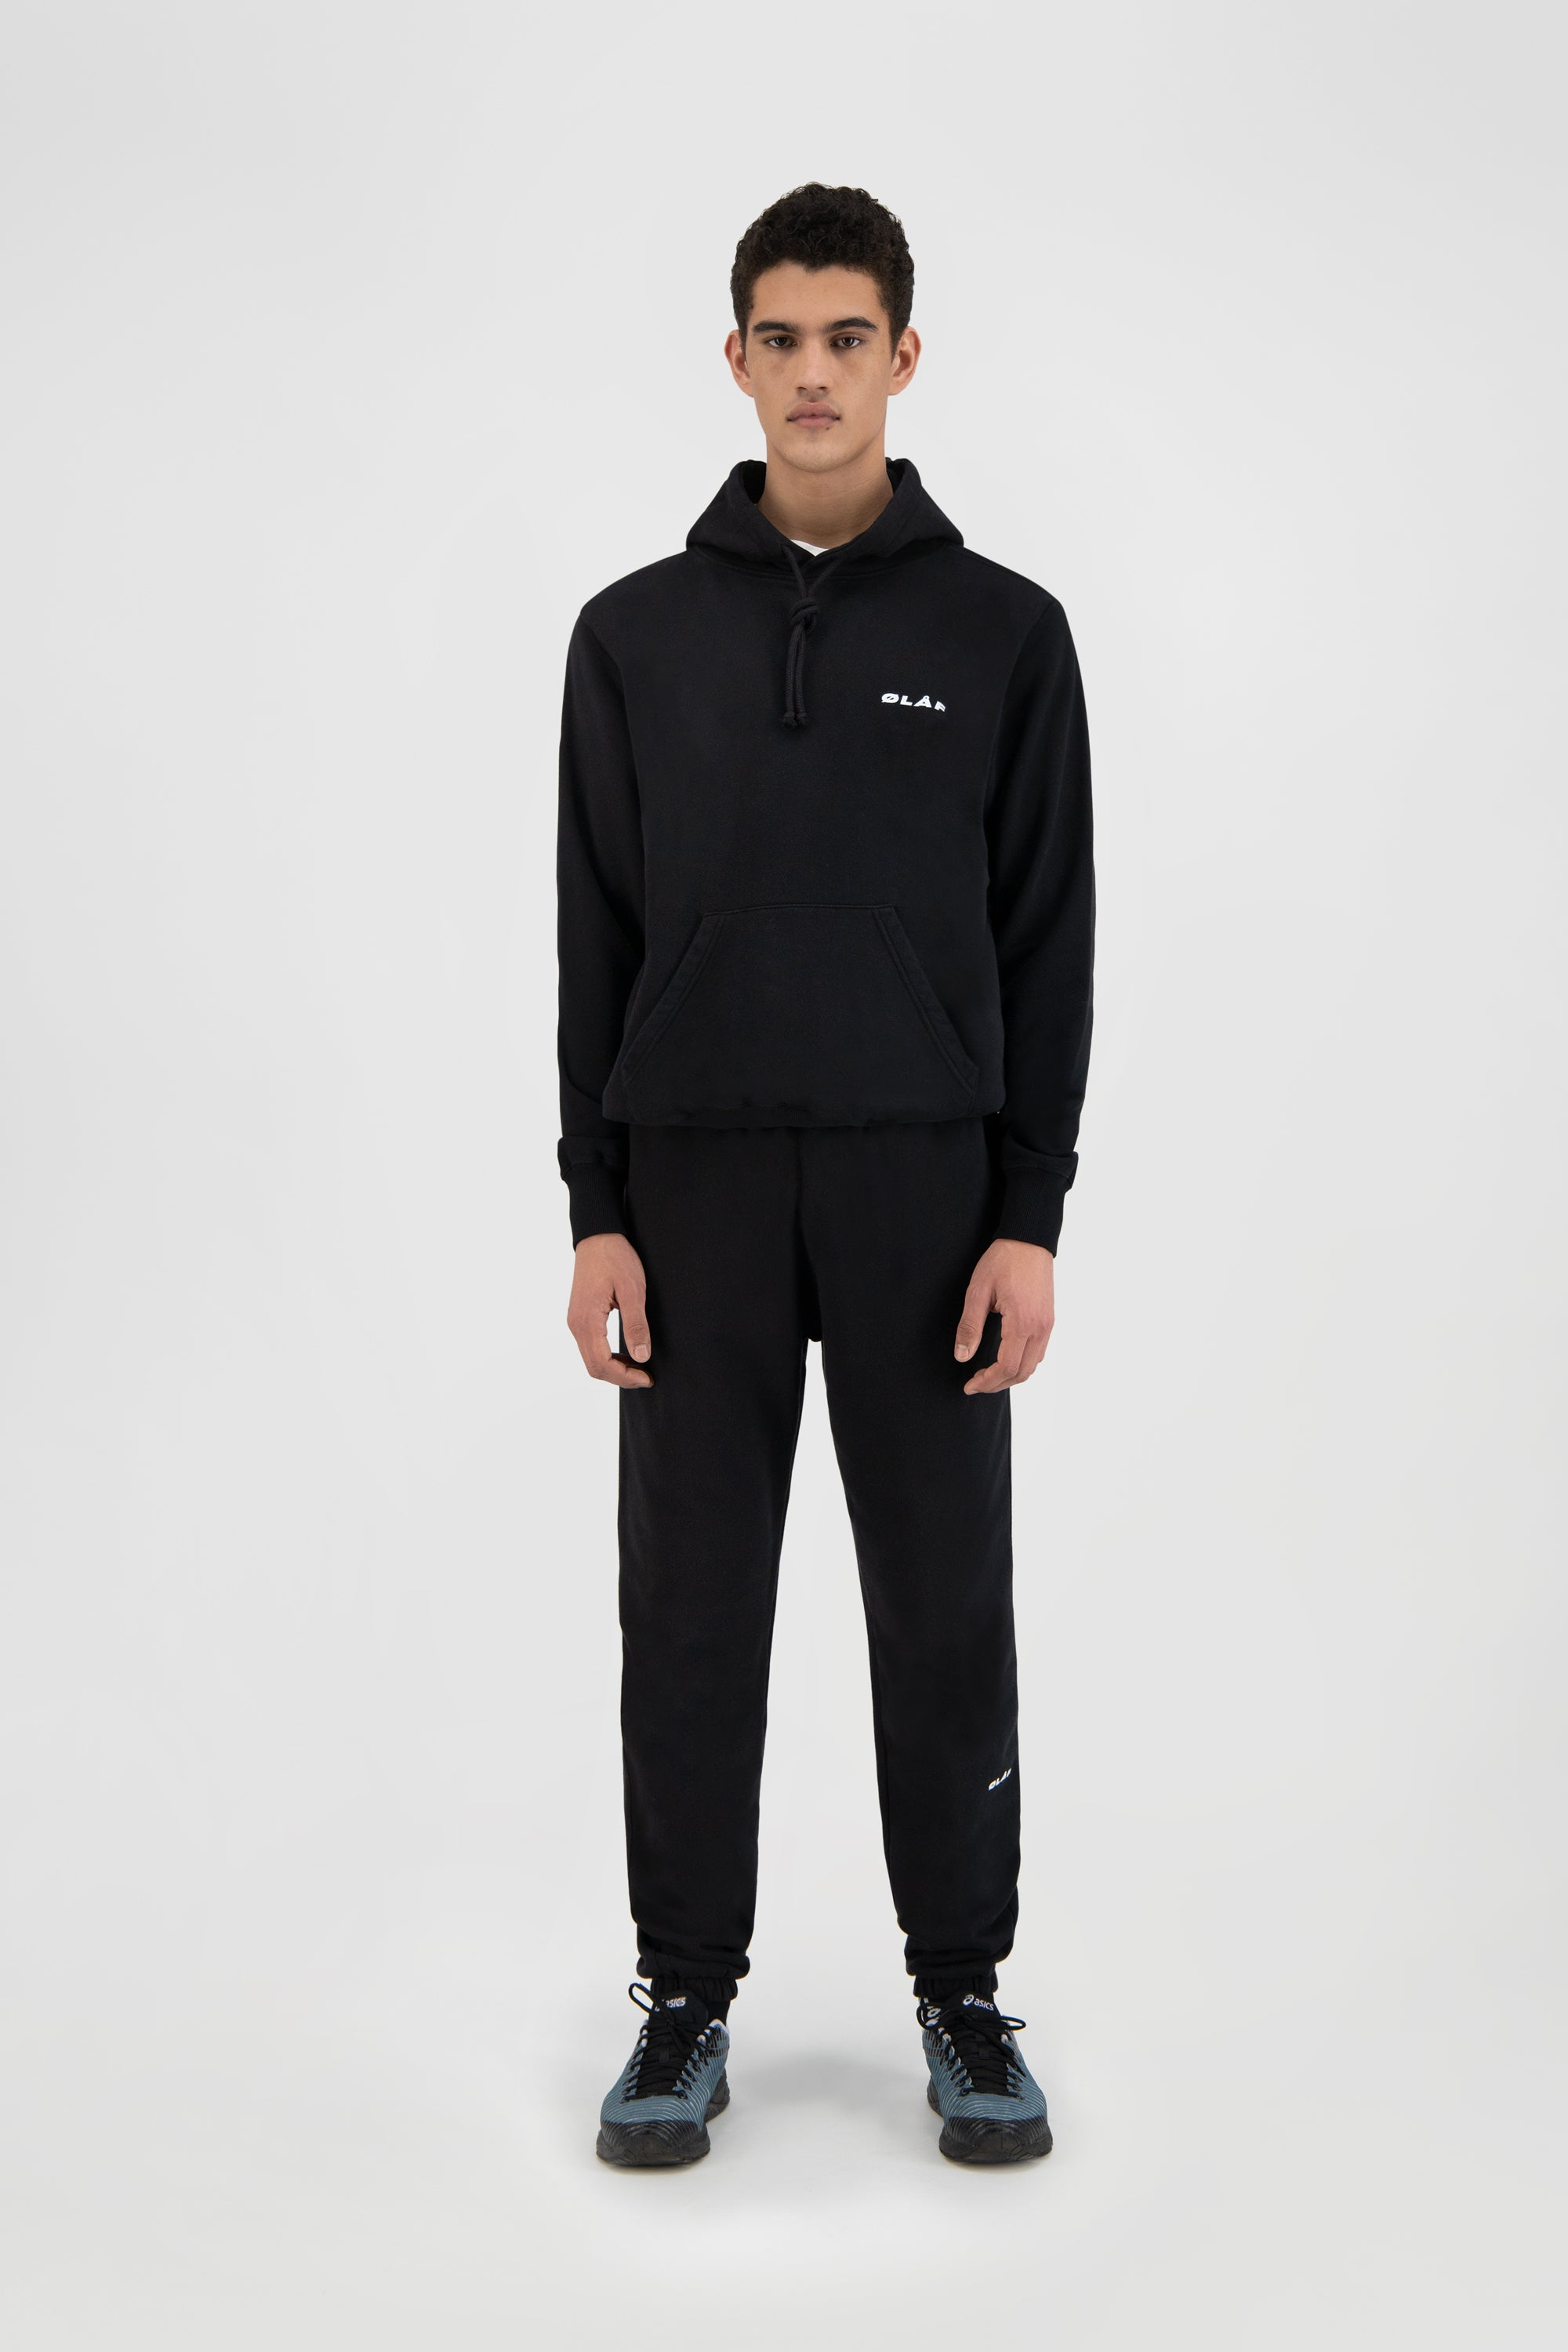 ØLÅF Uniform Sweatpant - Black